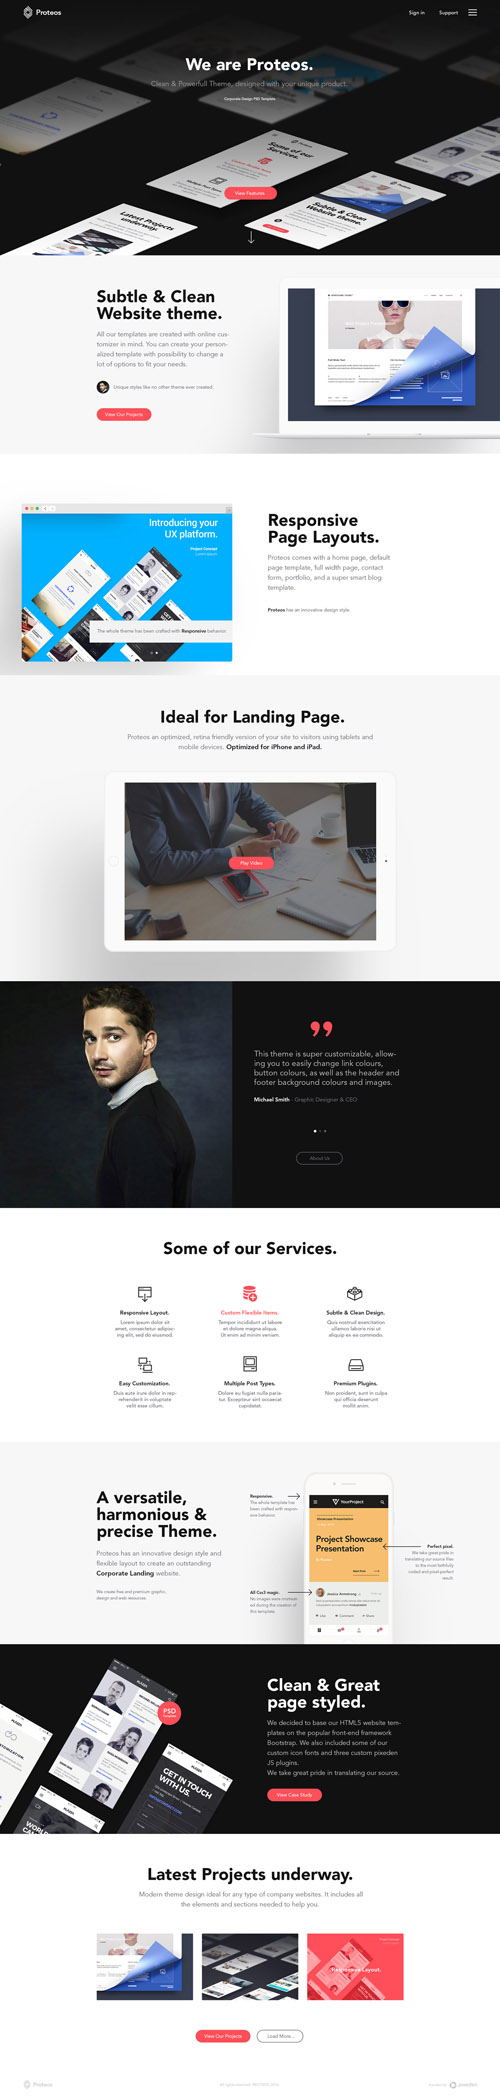 Proteos Corporate Website